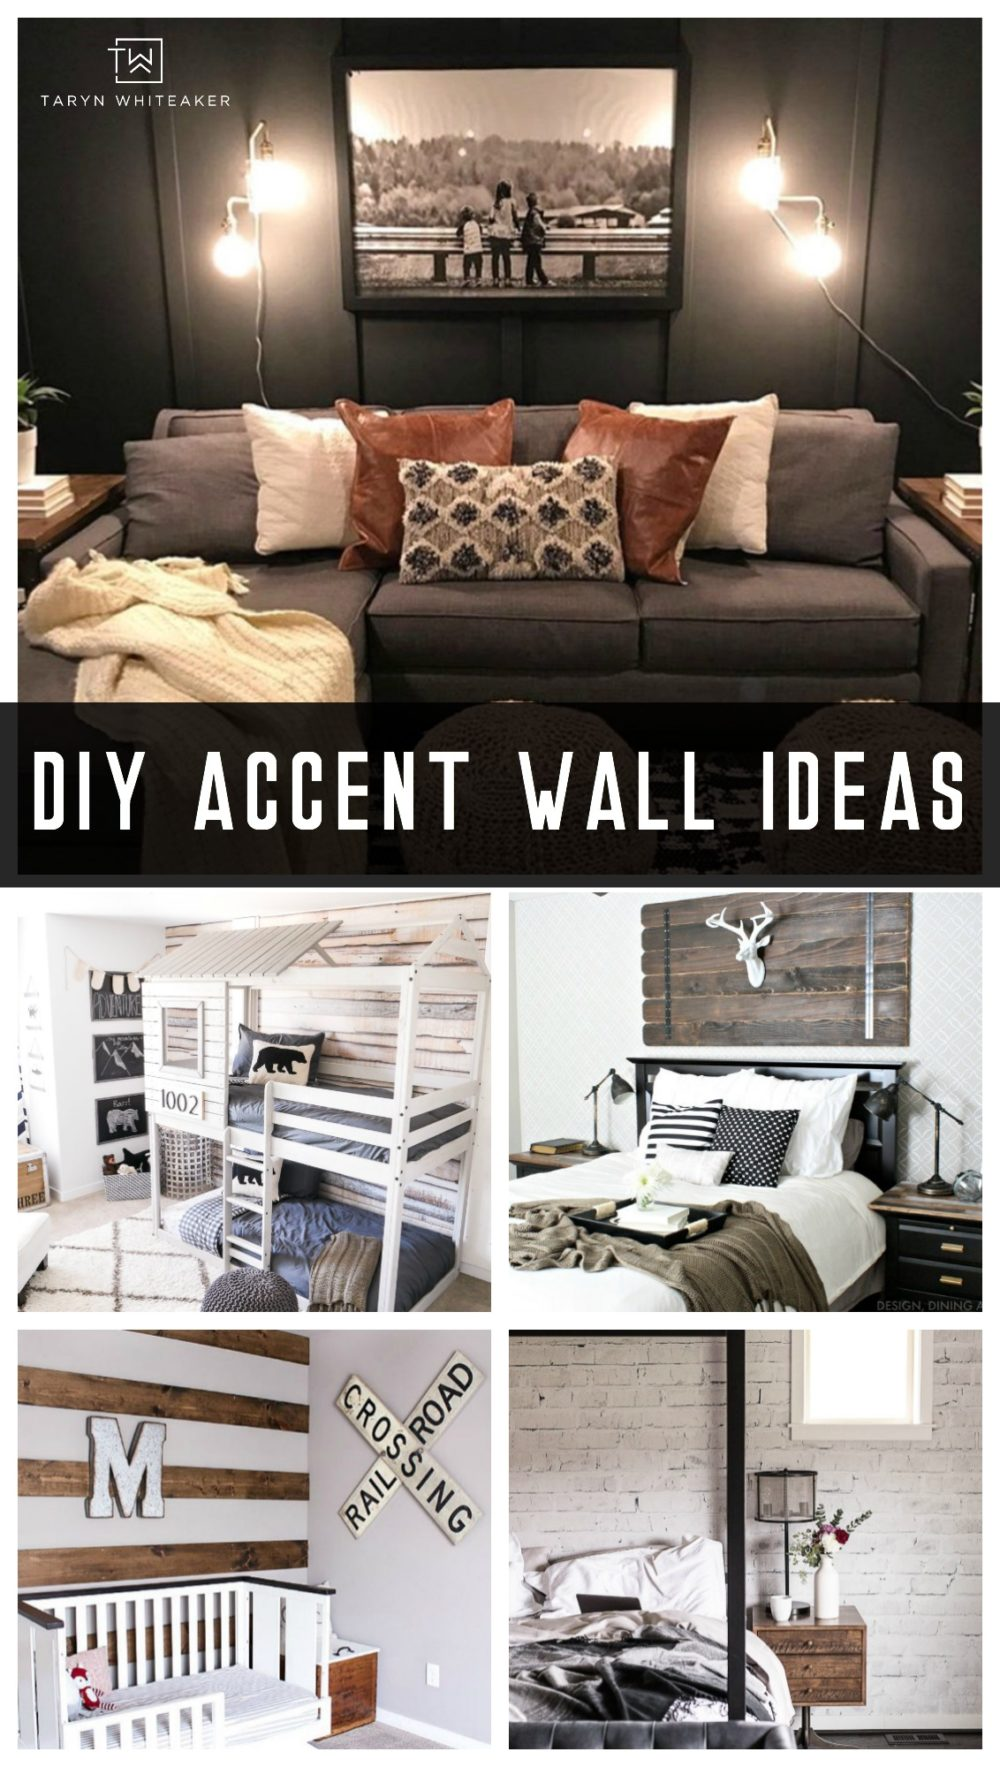 Fresh DIY Accent Wall Ideas from paint to wallpaper and wood!